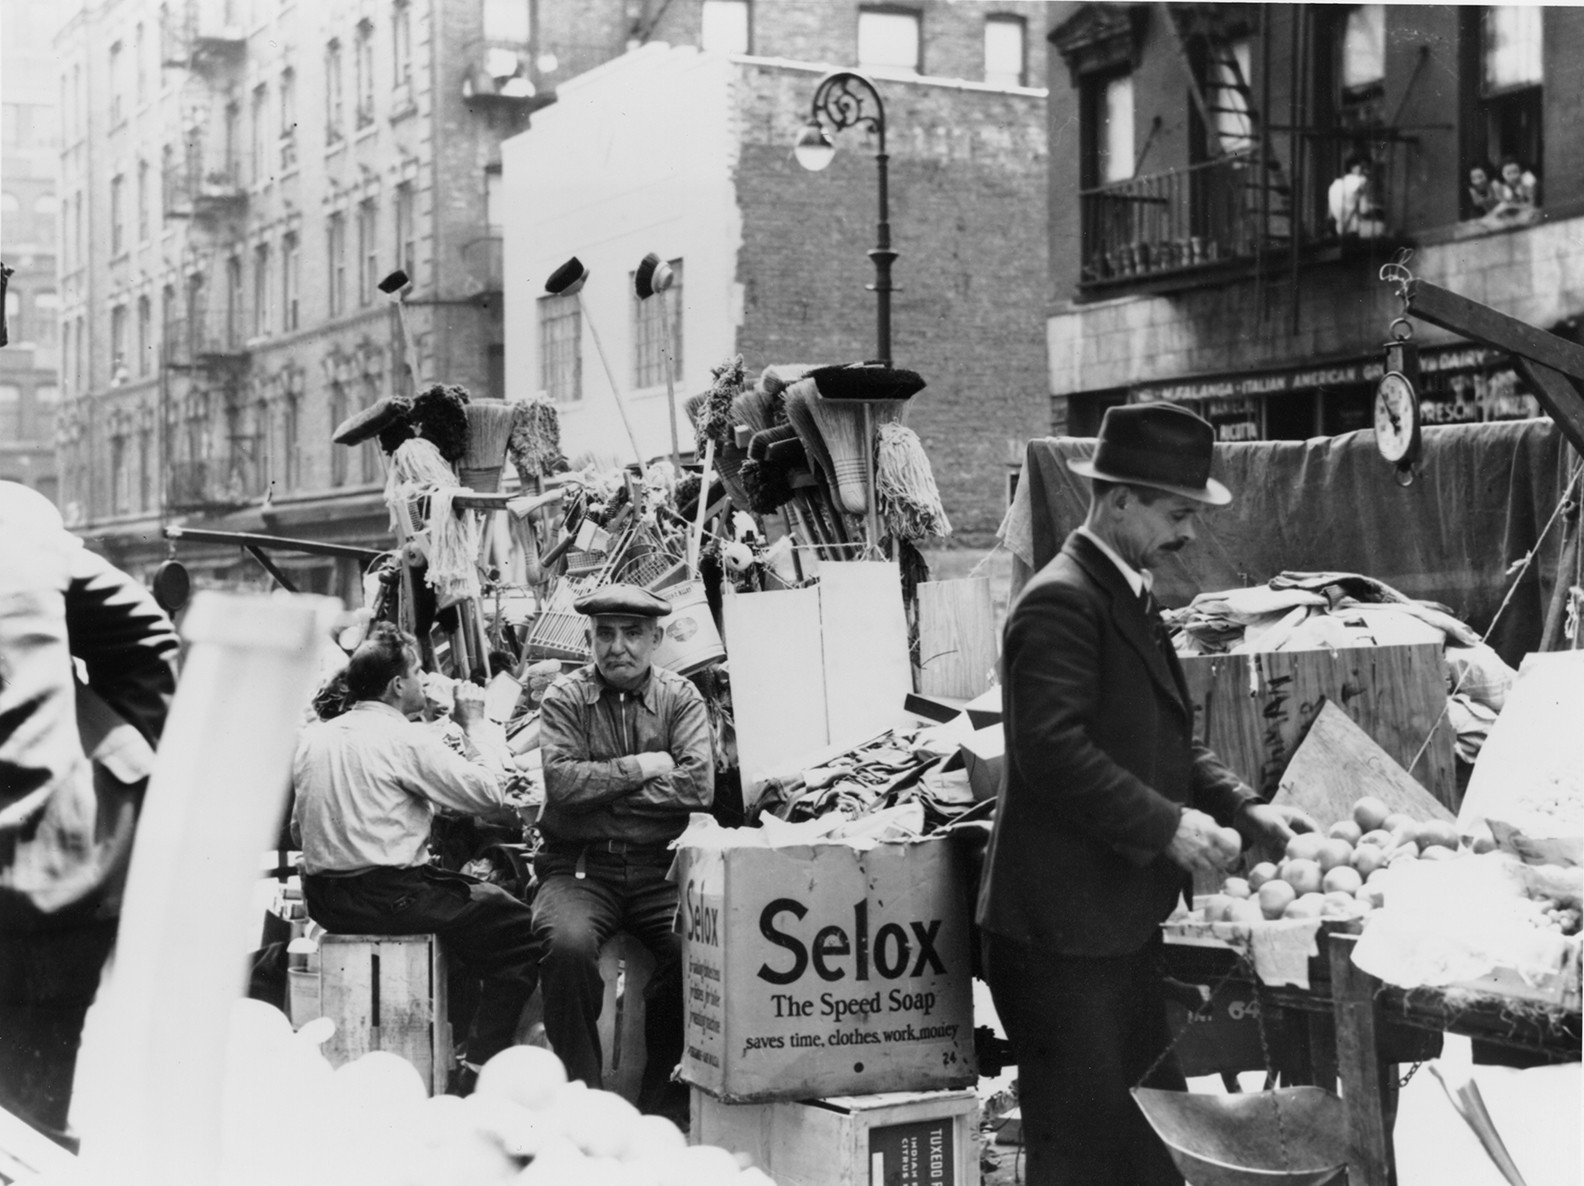 A couple of pushcarts surround a shopkeeper who is frowning while sitting on a crate with the brooms and mops they're selling piled behind them